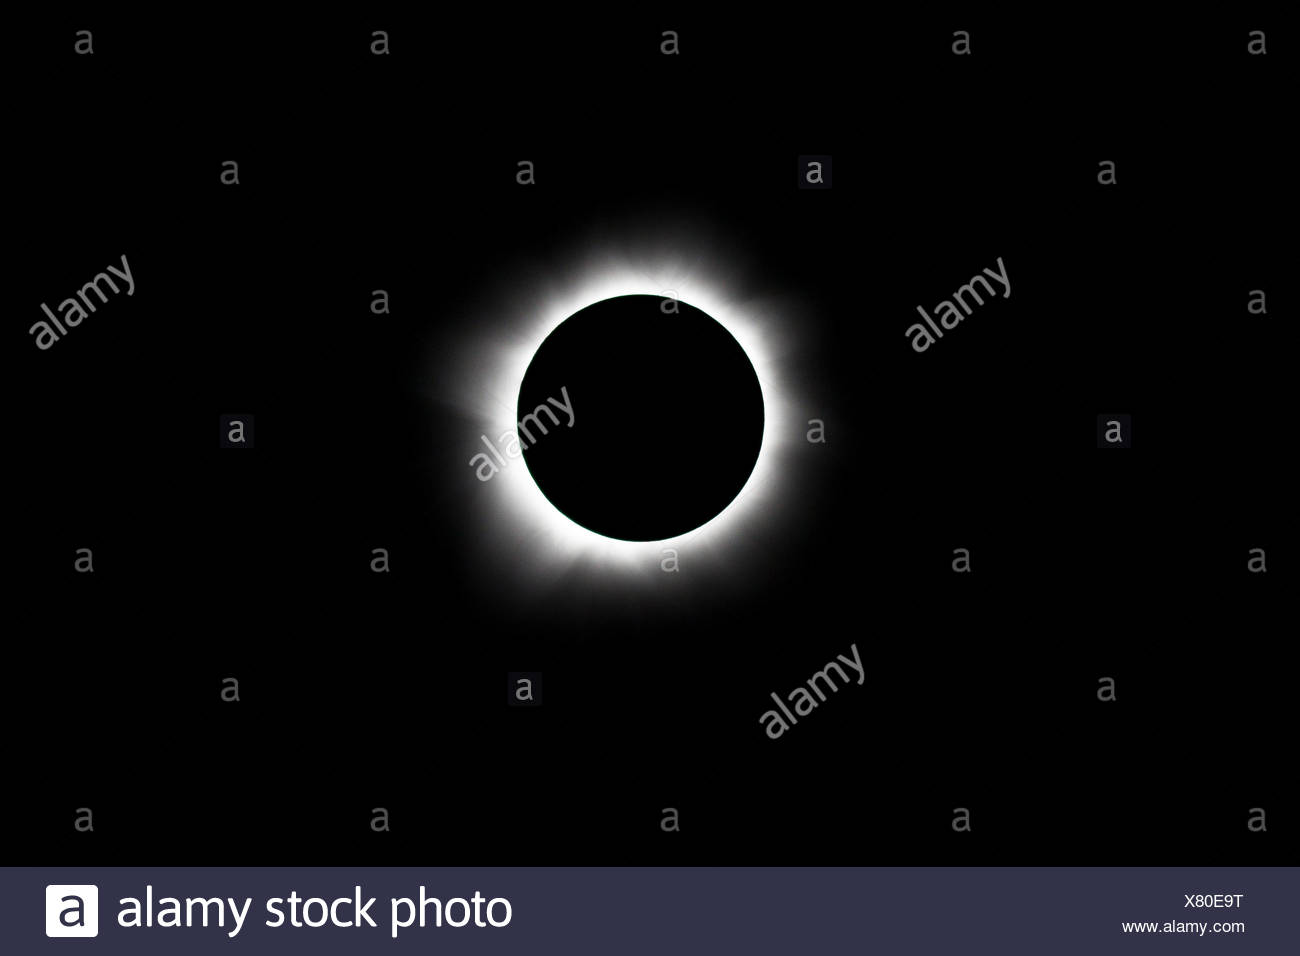 Total Solar Eclipse at 13 Nobember 2012, Pacific Ocean, New Caledonia - Stock Image